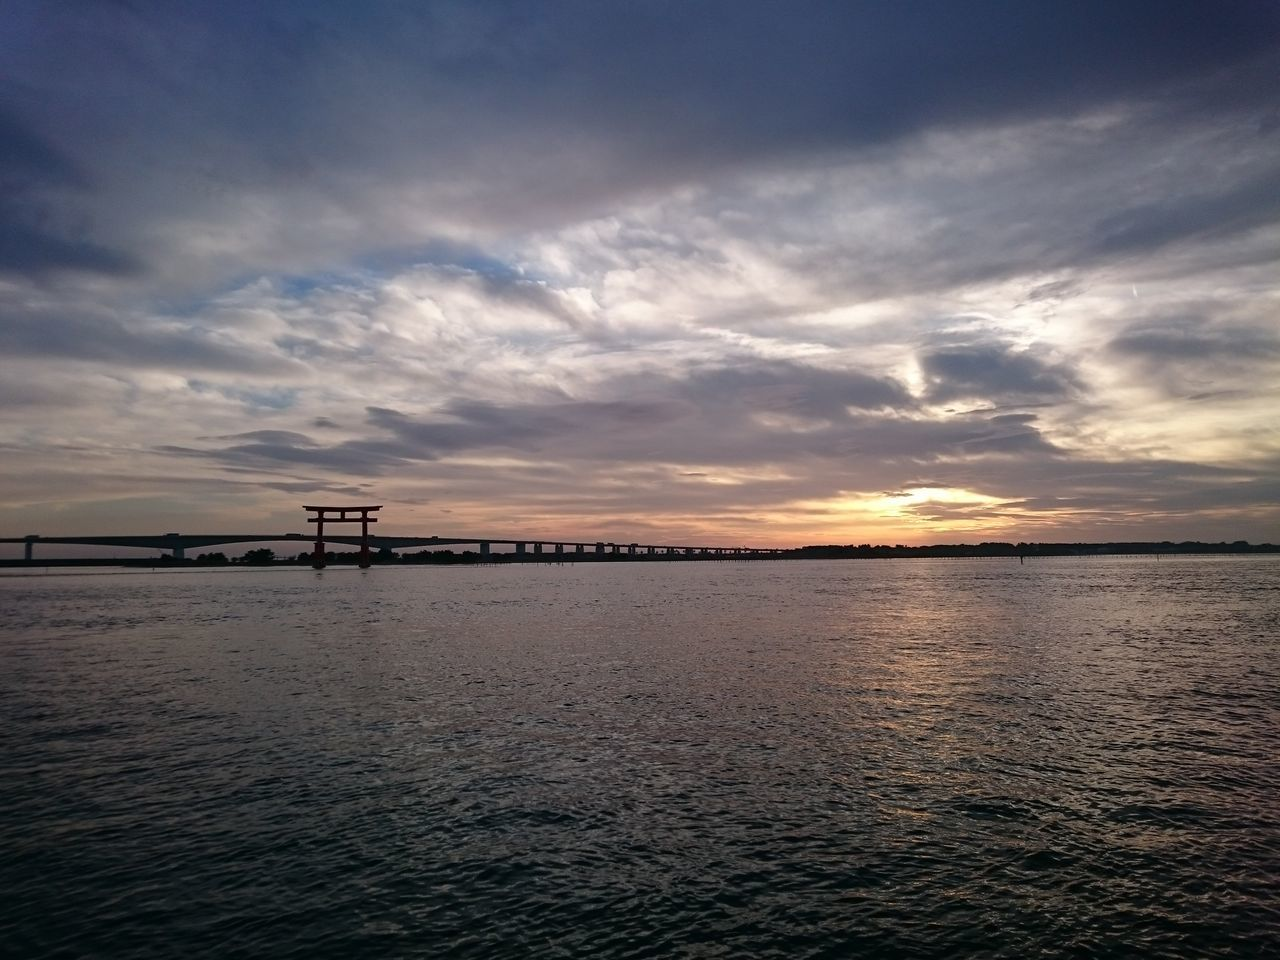 Water Tranquility Sea Sky Nature Outdoors Tranquil Scene No People Scenics Cloud - Sky Sunset Beauty In Nature Day